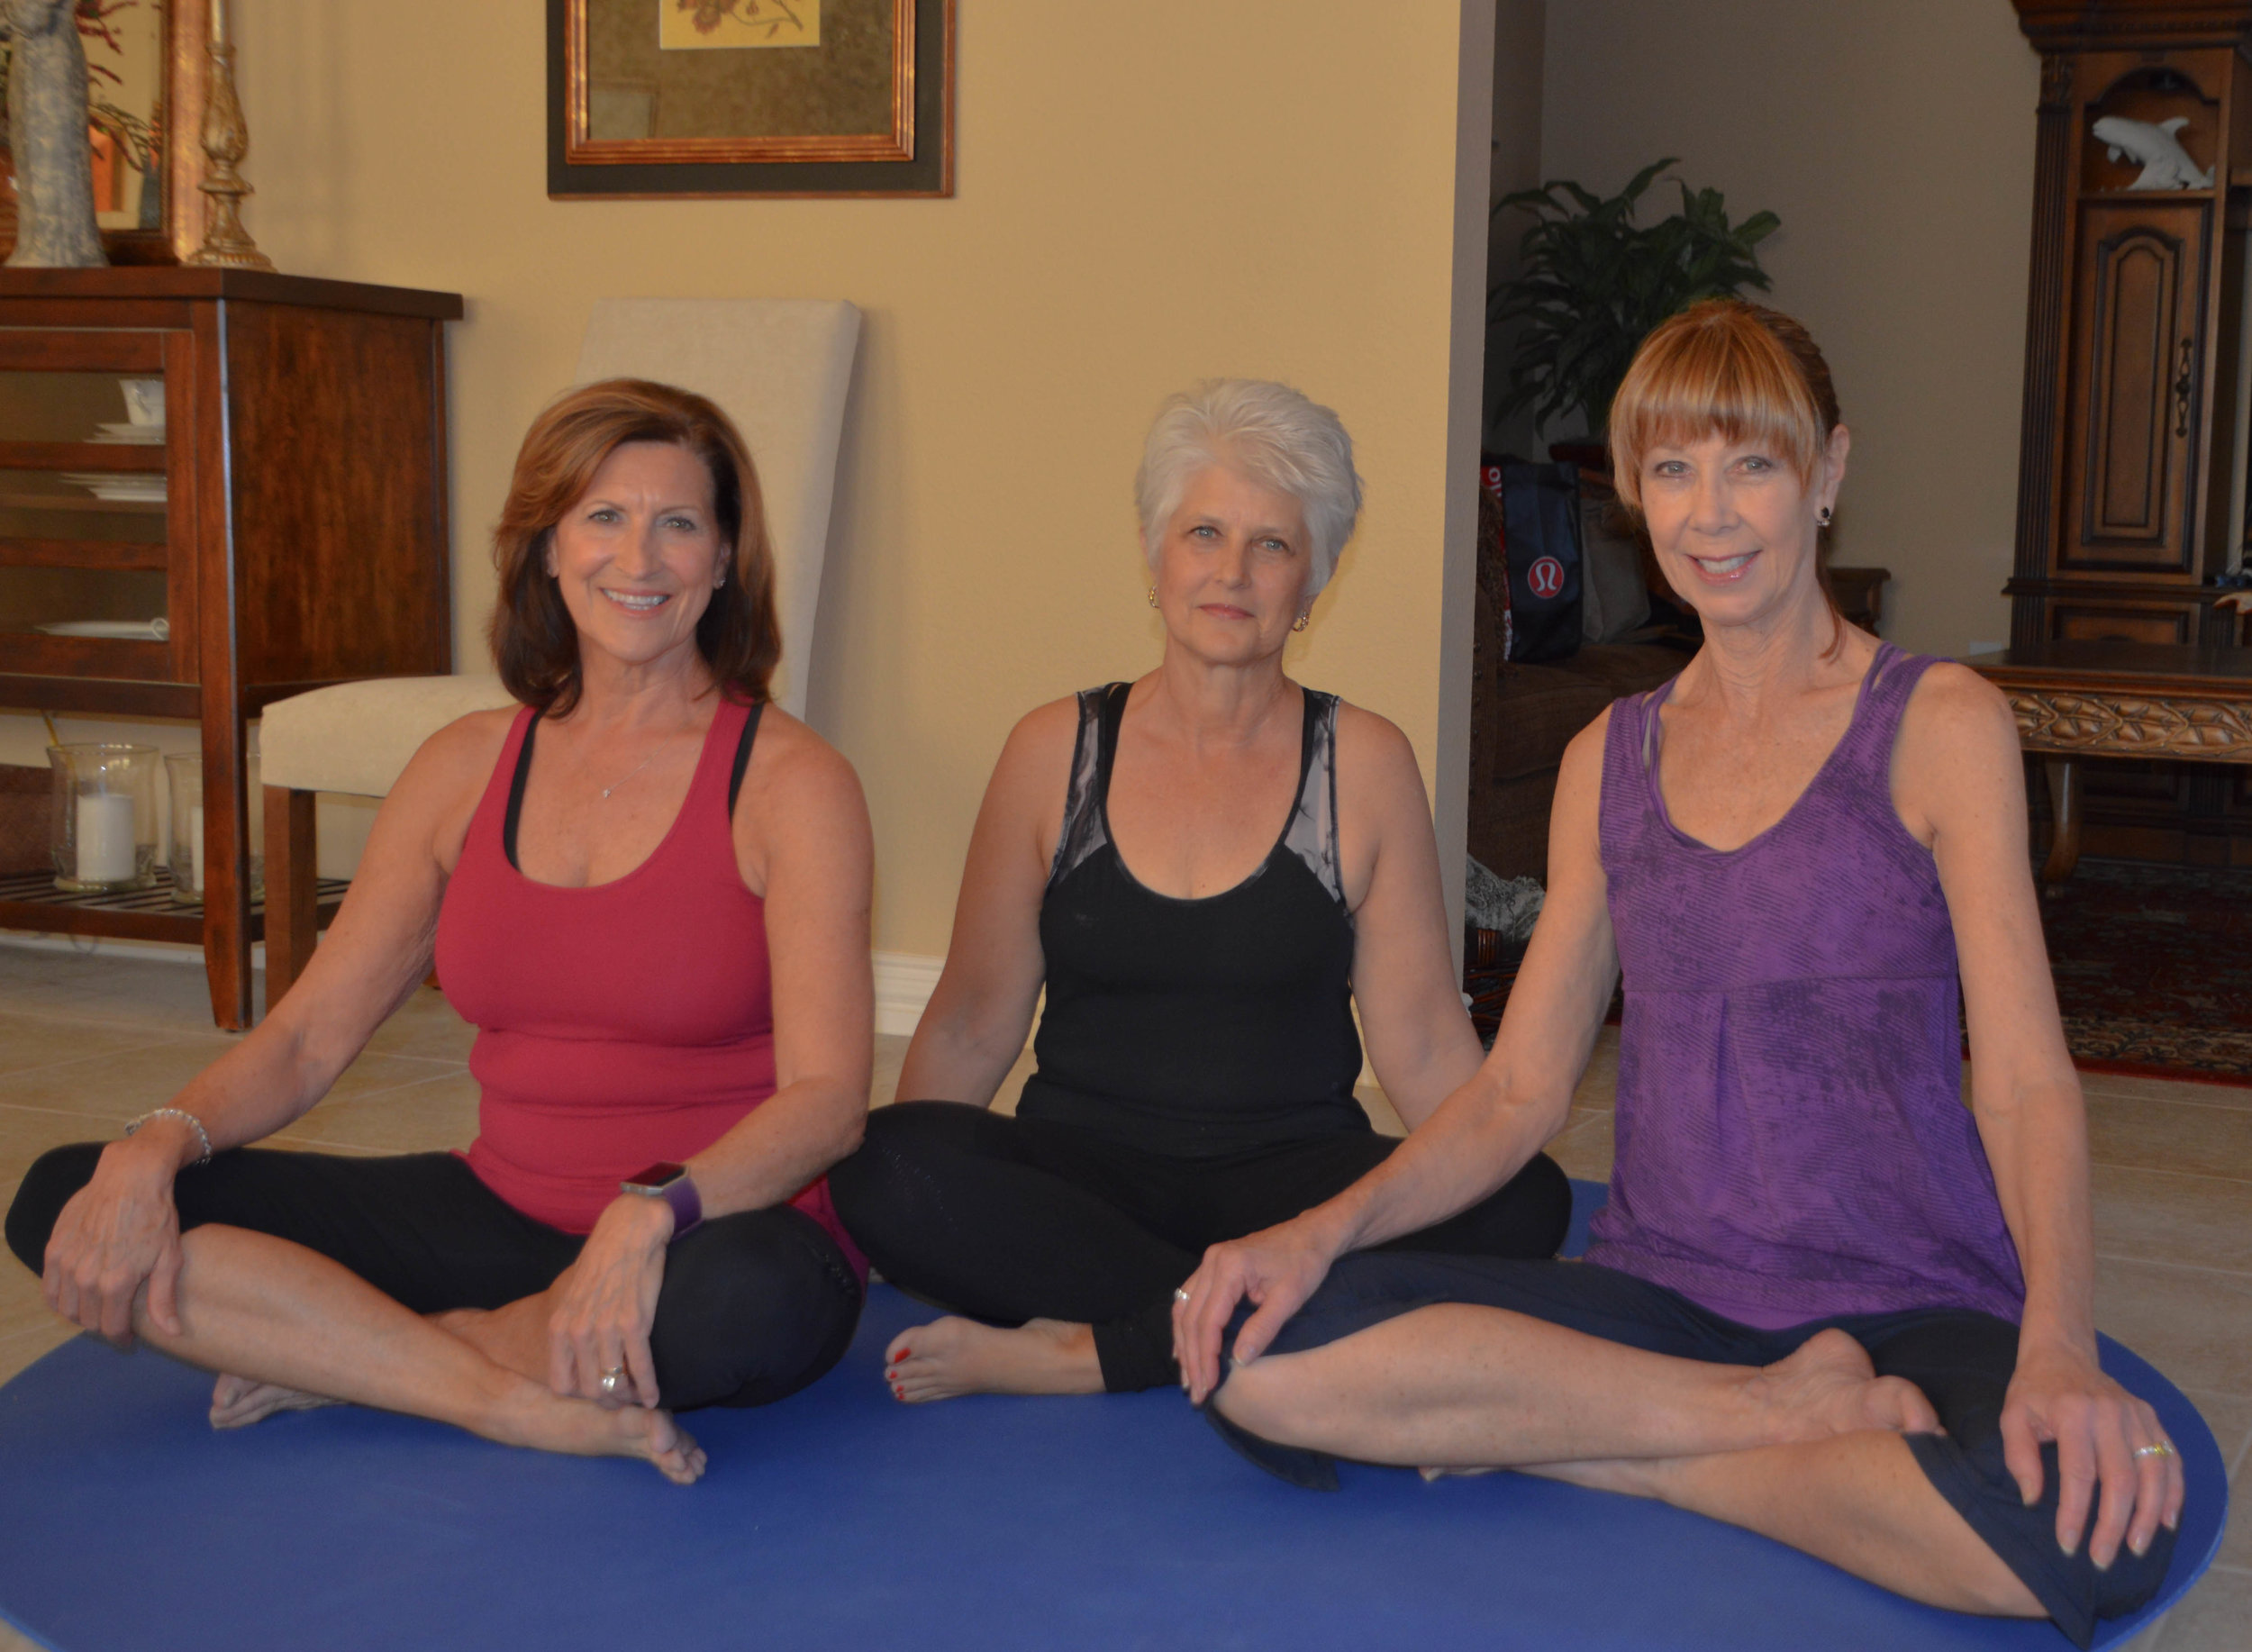 Connie Cline, Brandy Wismer and Janelle Roth